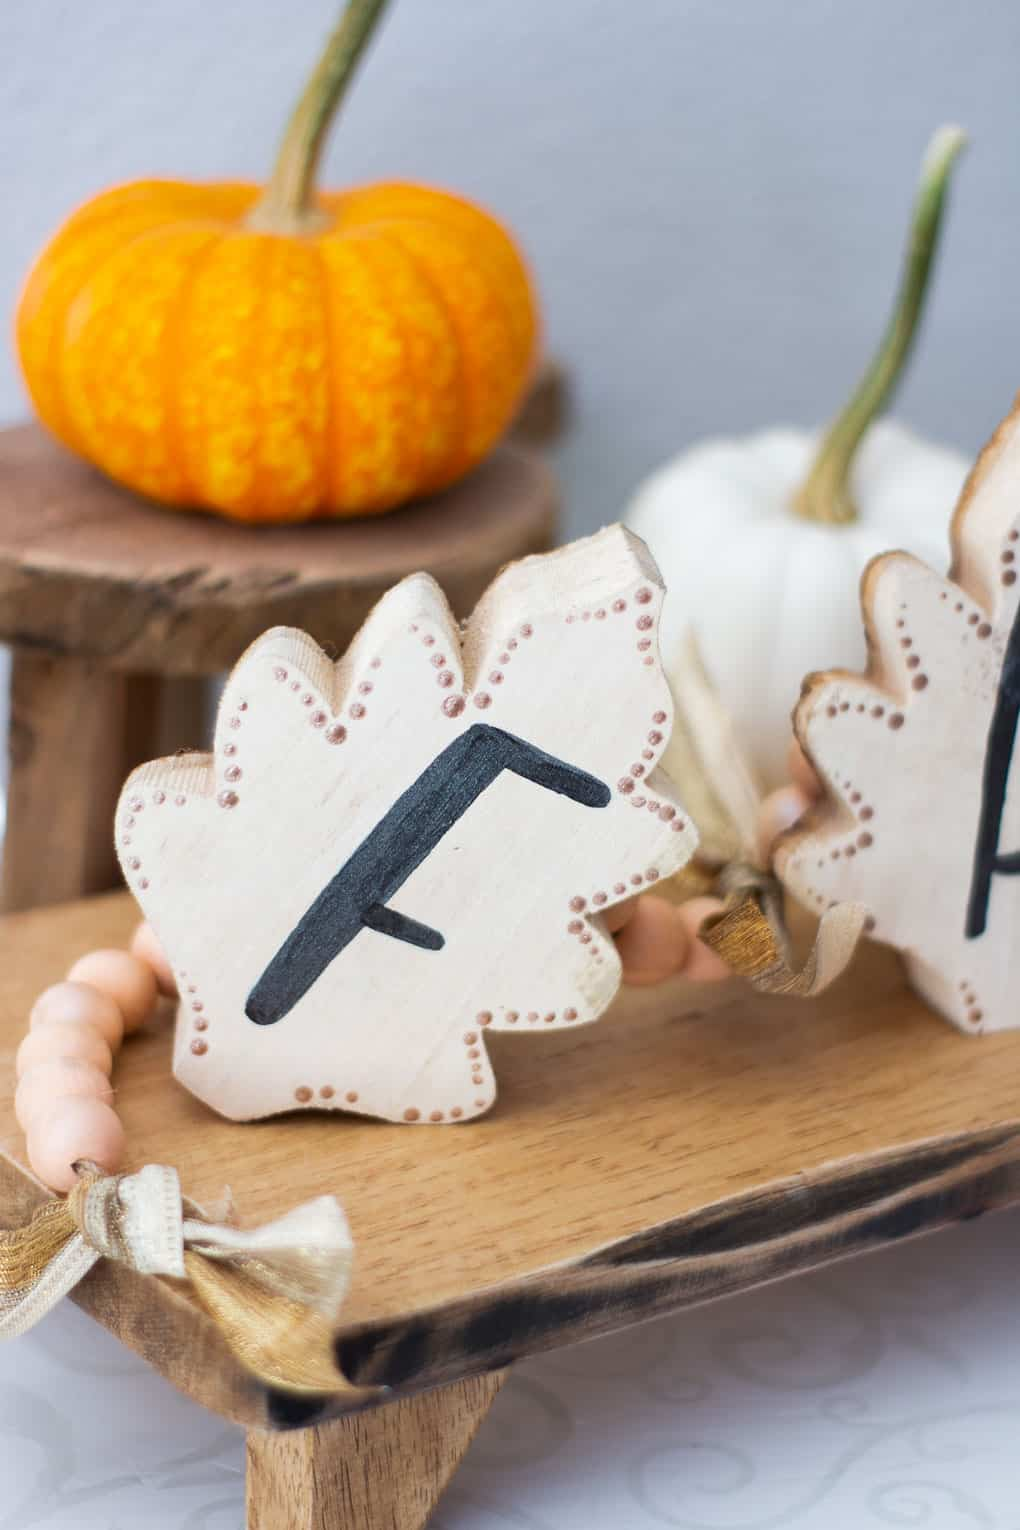 How to Make a Wood Leaf Garland for Fall